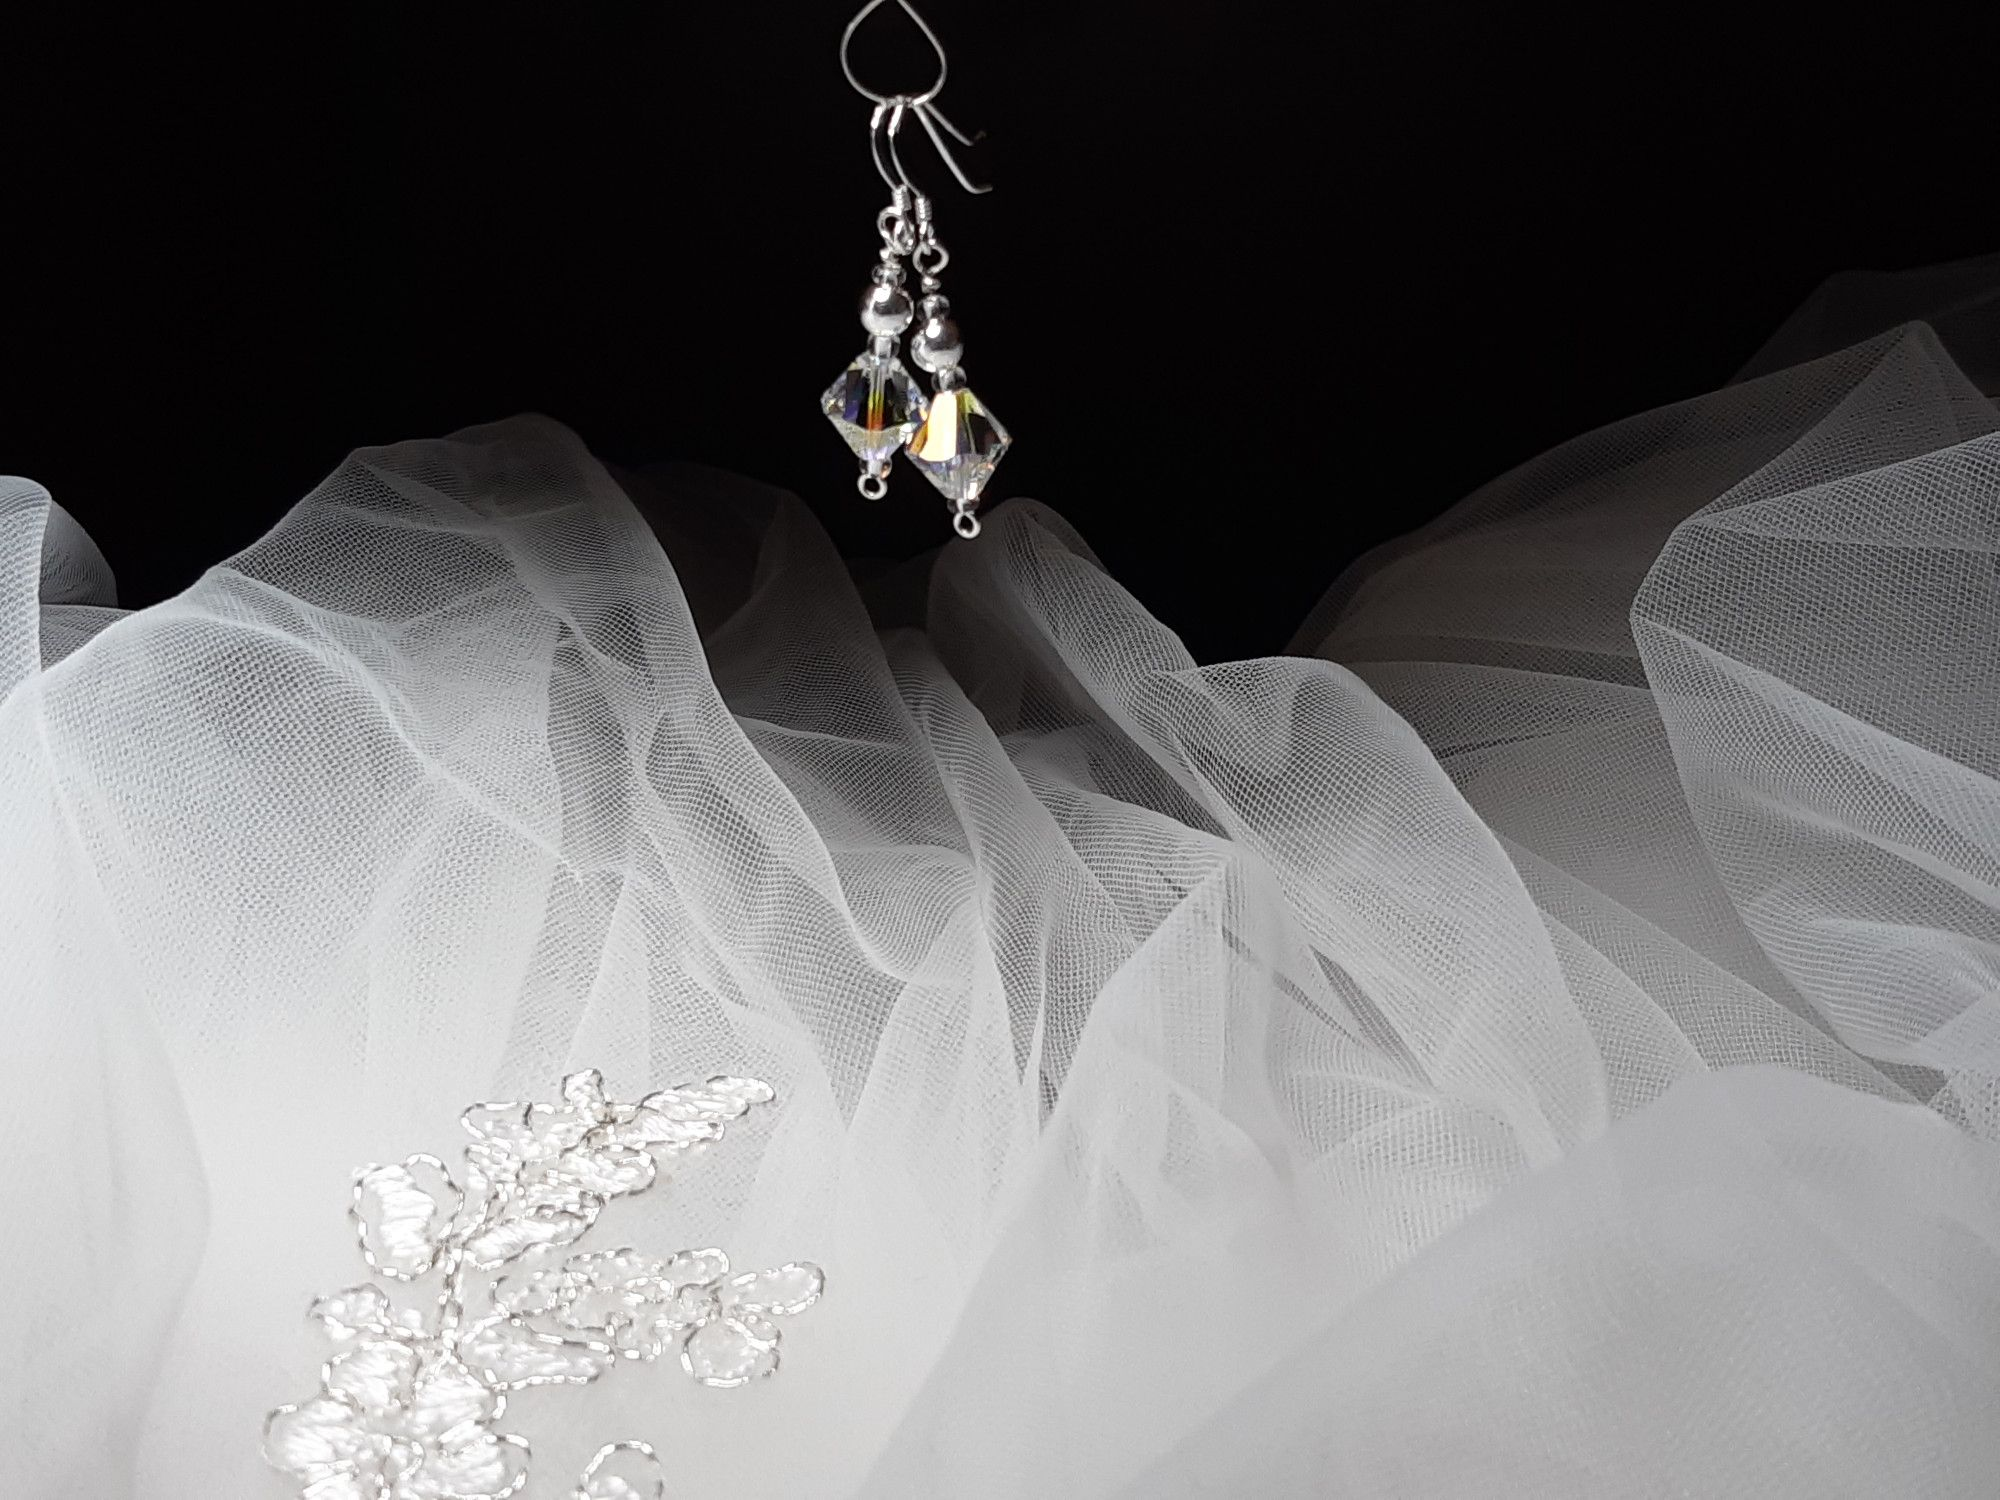 Occasion-bridal-wedding-swarovski crystal+sterling silver earrings-6.jpg